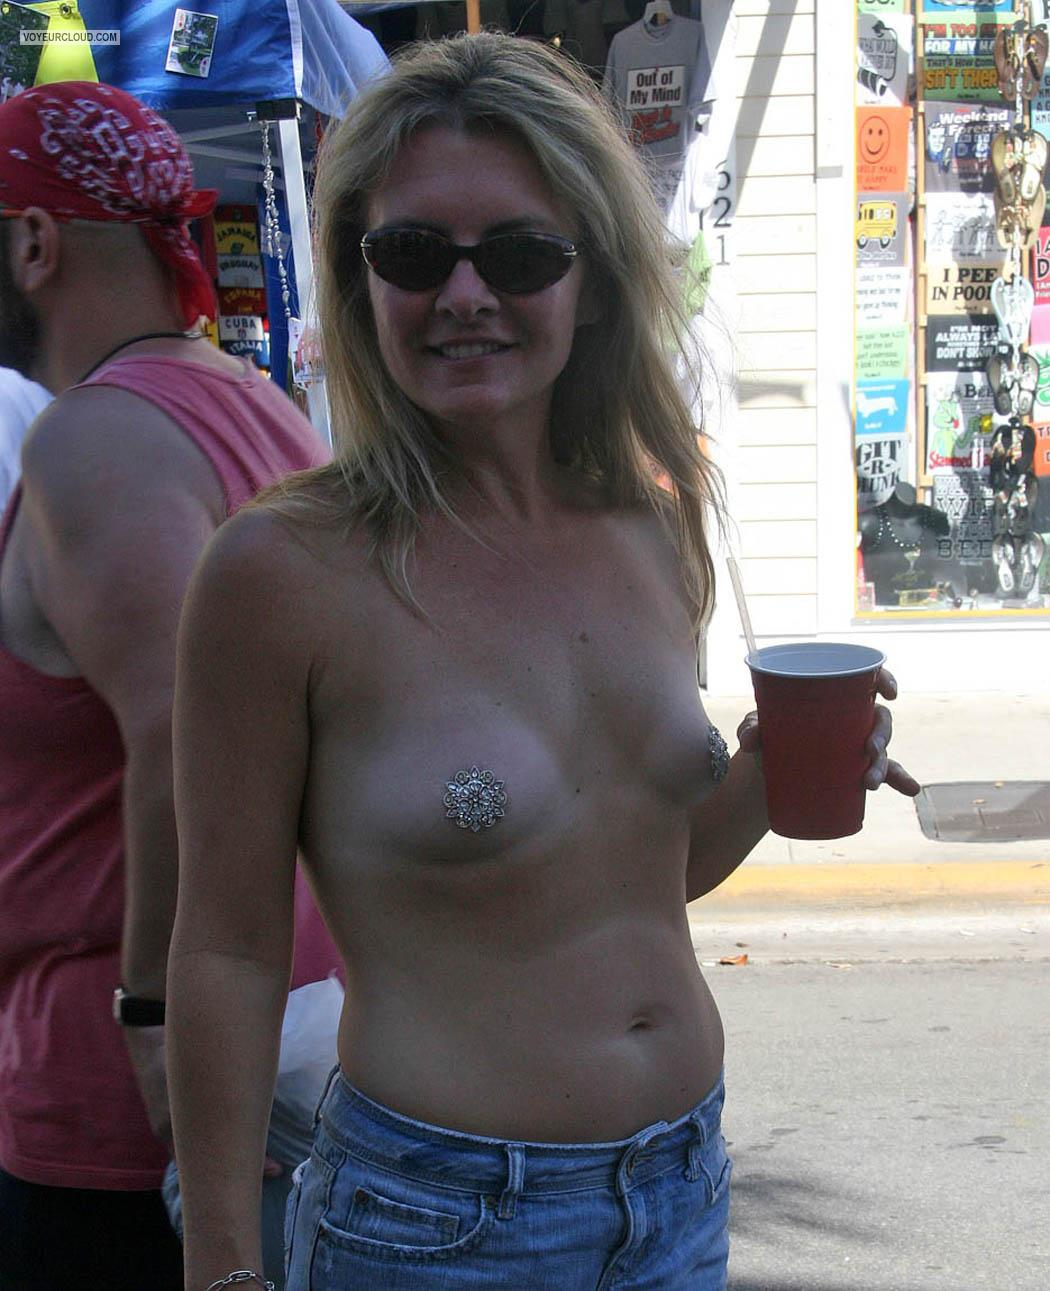 Tit Flash: Very Small Tits By IPhone - Topless Solo from United States